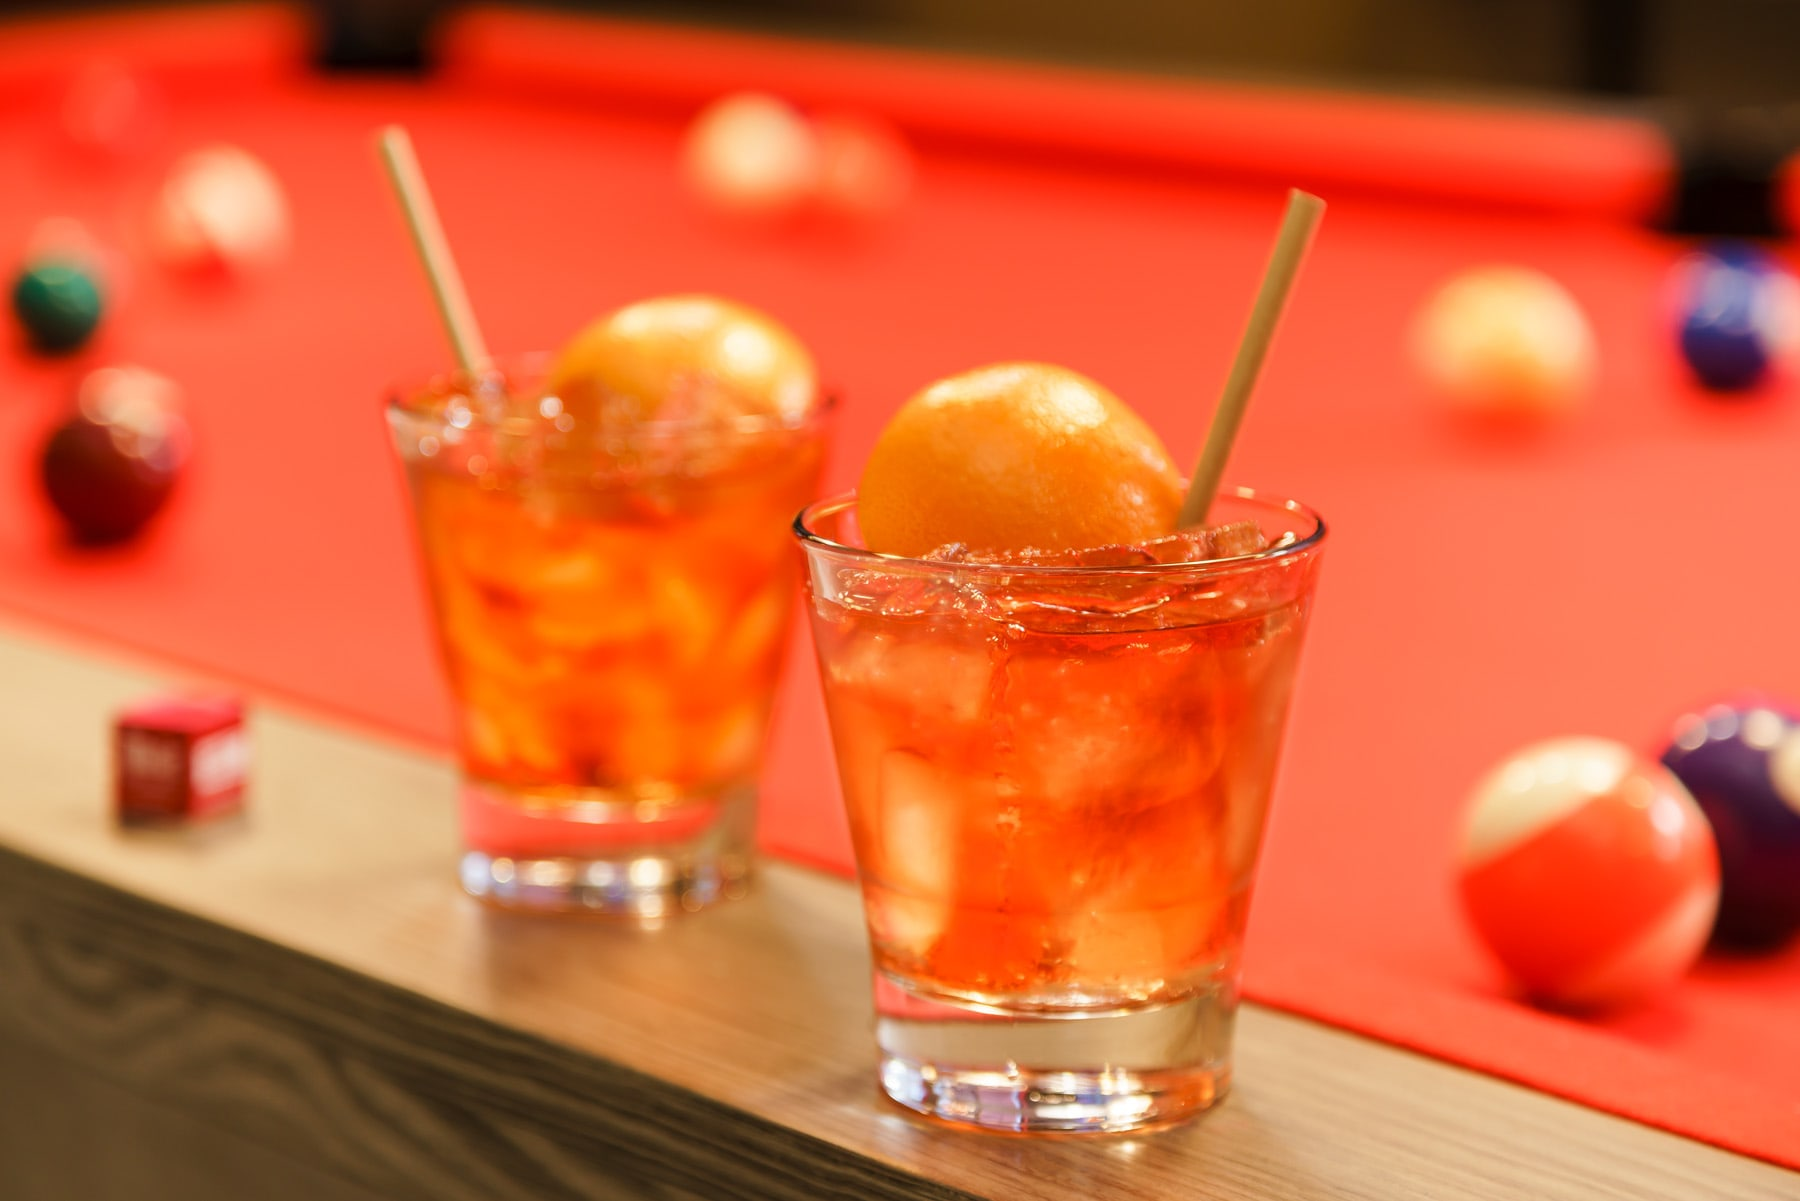 CAZBAR orange drinks placed on snooker table